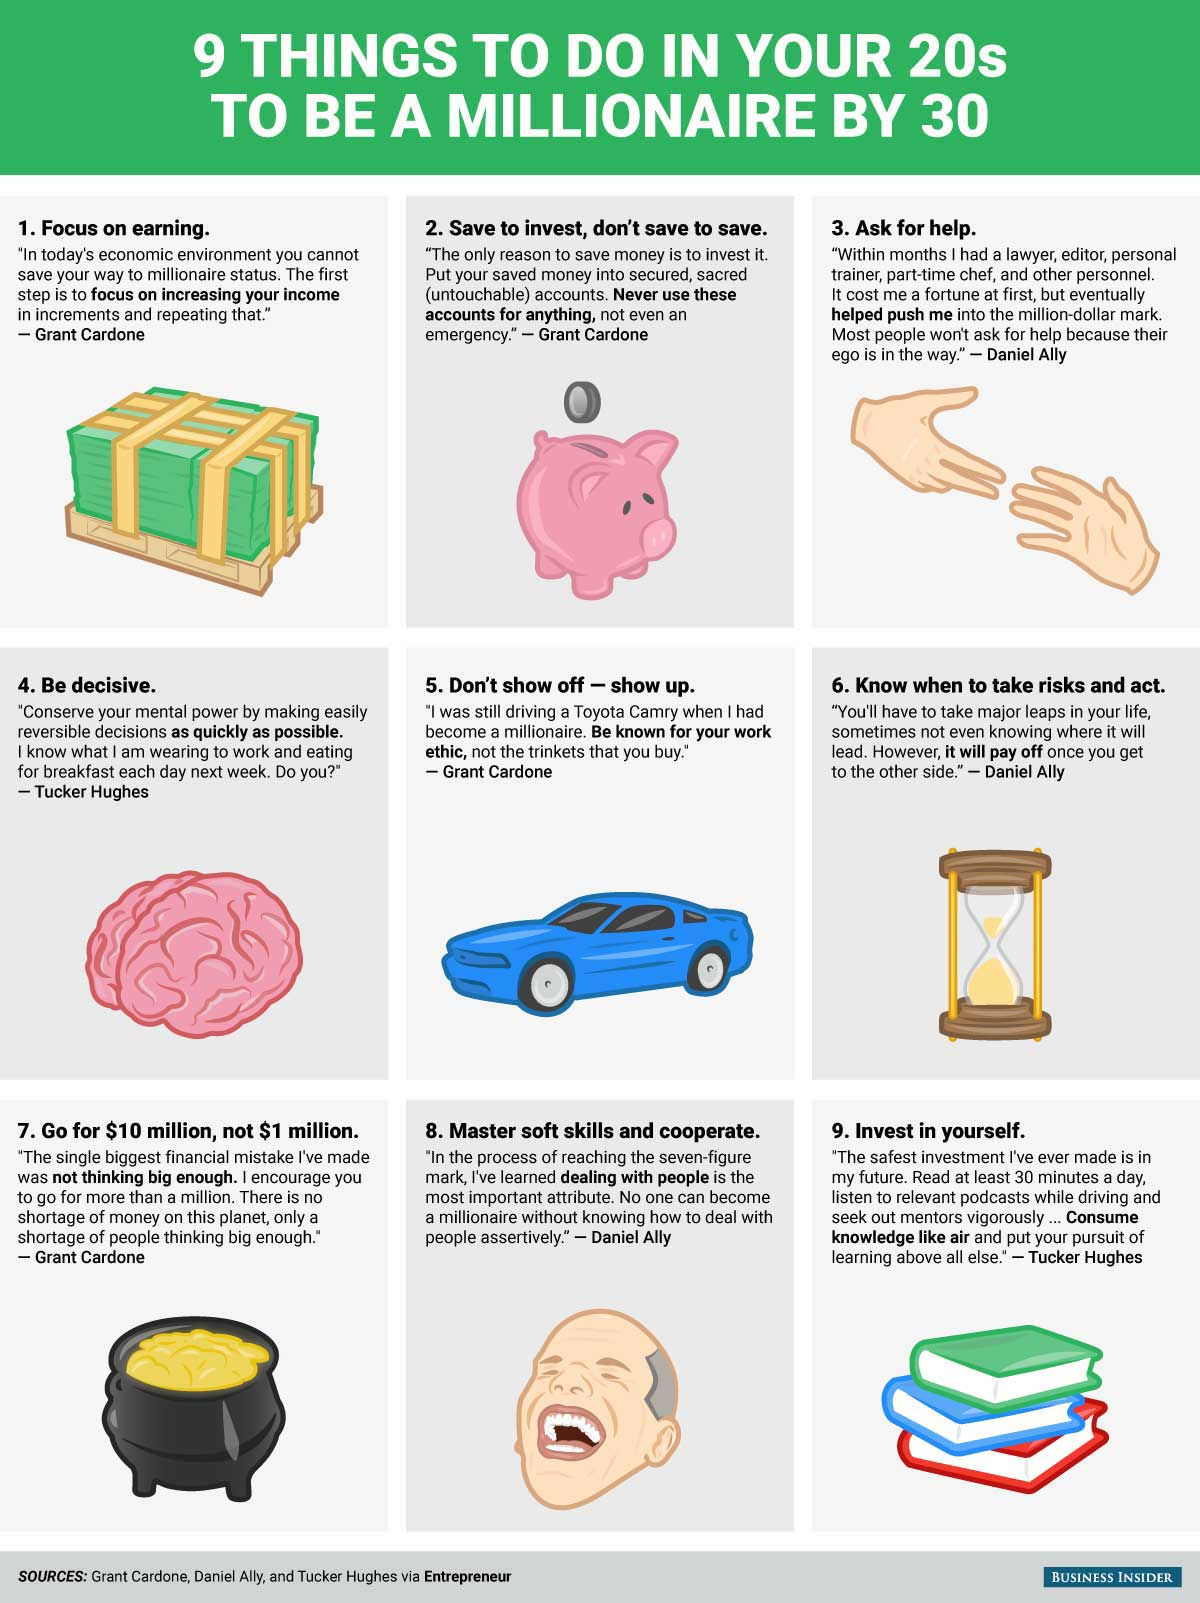 9-things-to-do-in-your-20s-to-be-a-millionaire-by-30